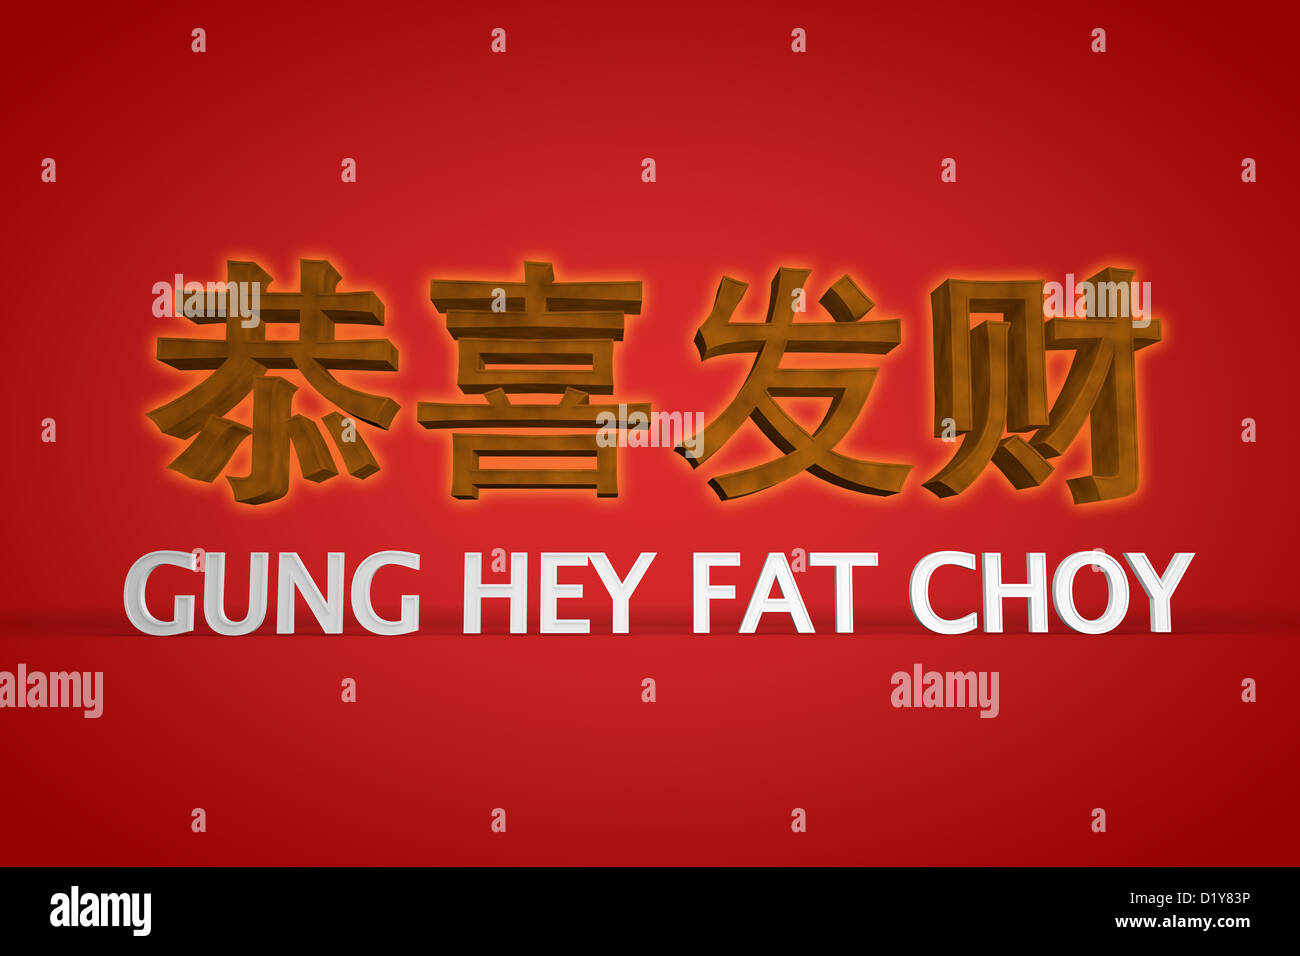 gung hey fat choy chinese new year 3d rendered illustration against a red background